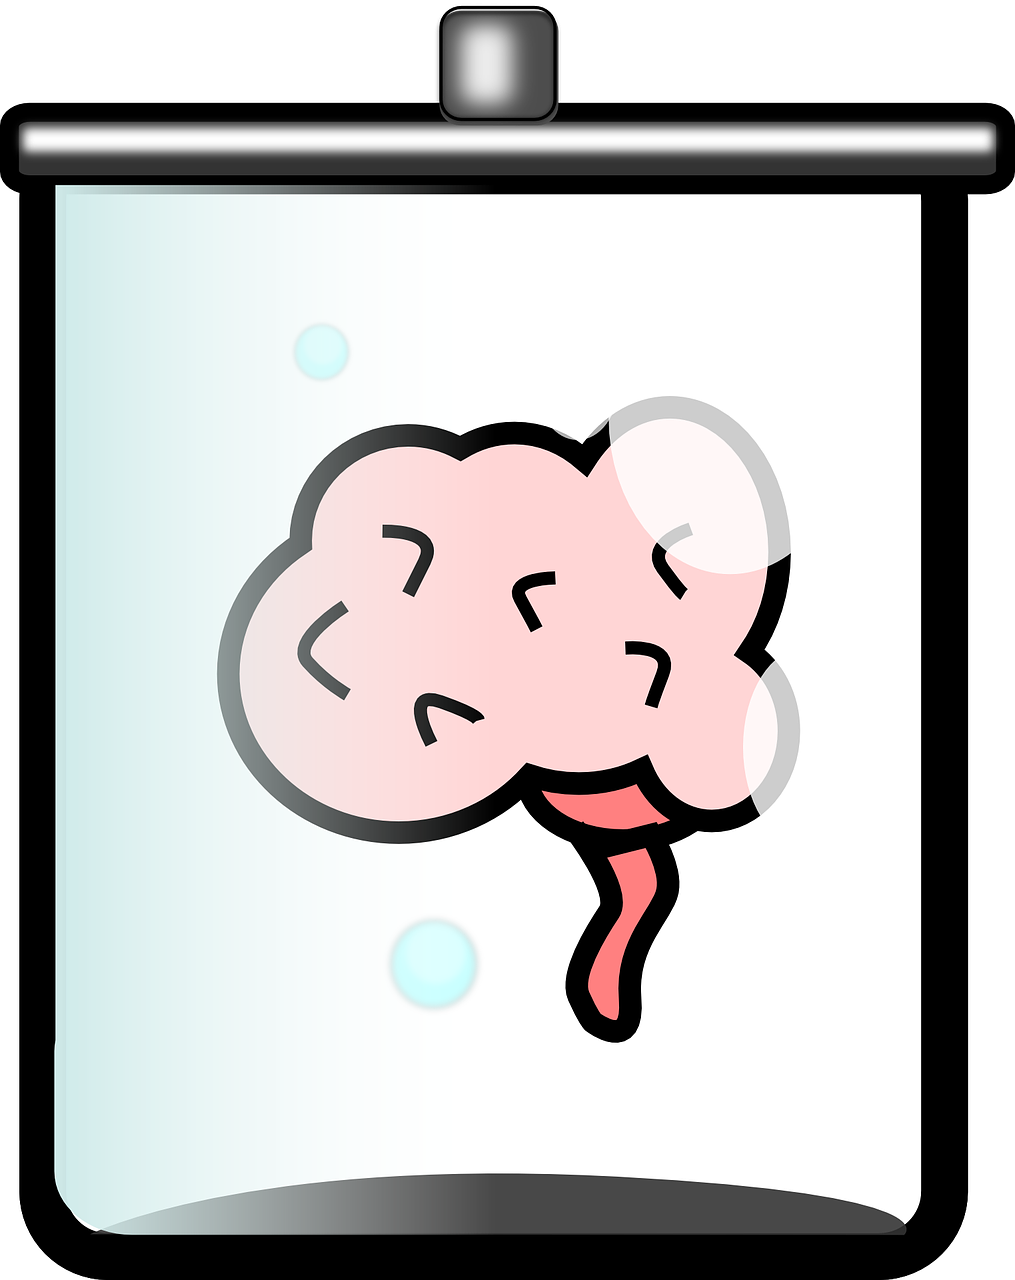 Fishbowl clipart surprised. Brains organoids and cultural